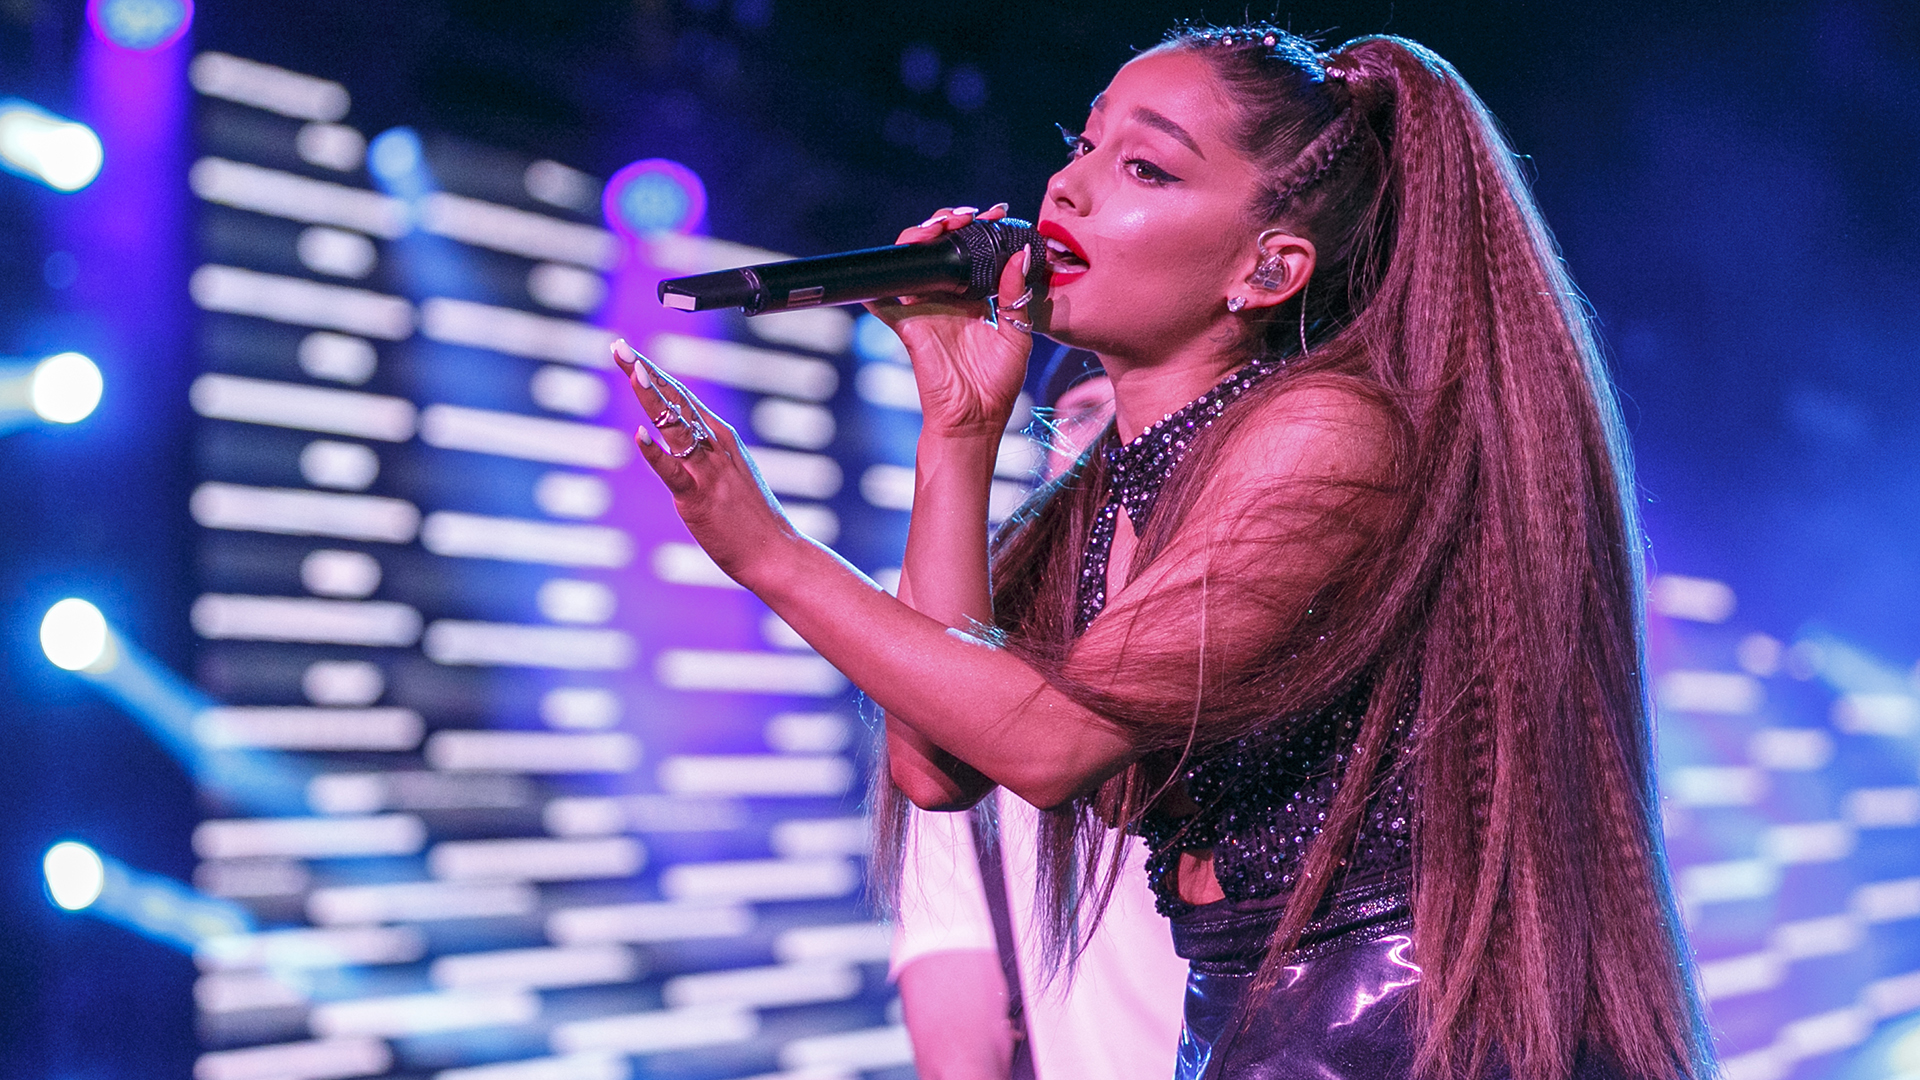 Photo of 7 Rings Song Download in 320Kbps High Definition (HD) Free